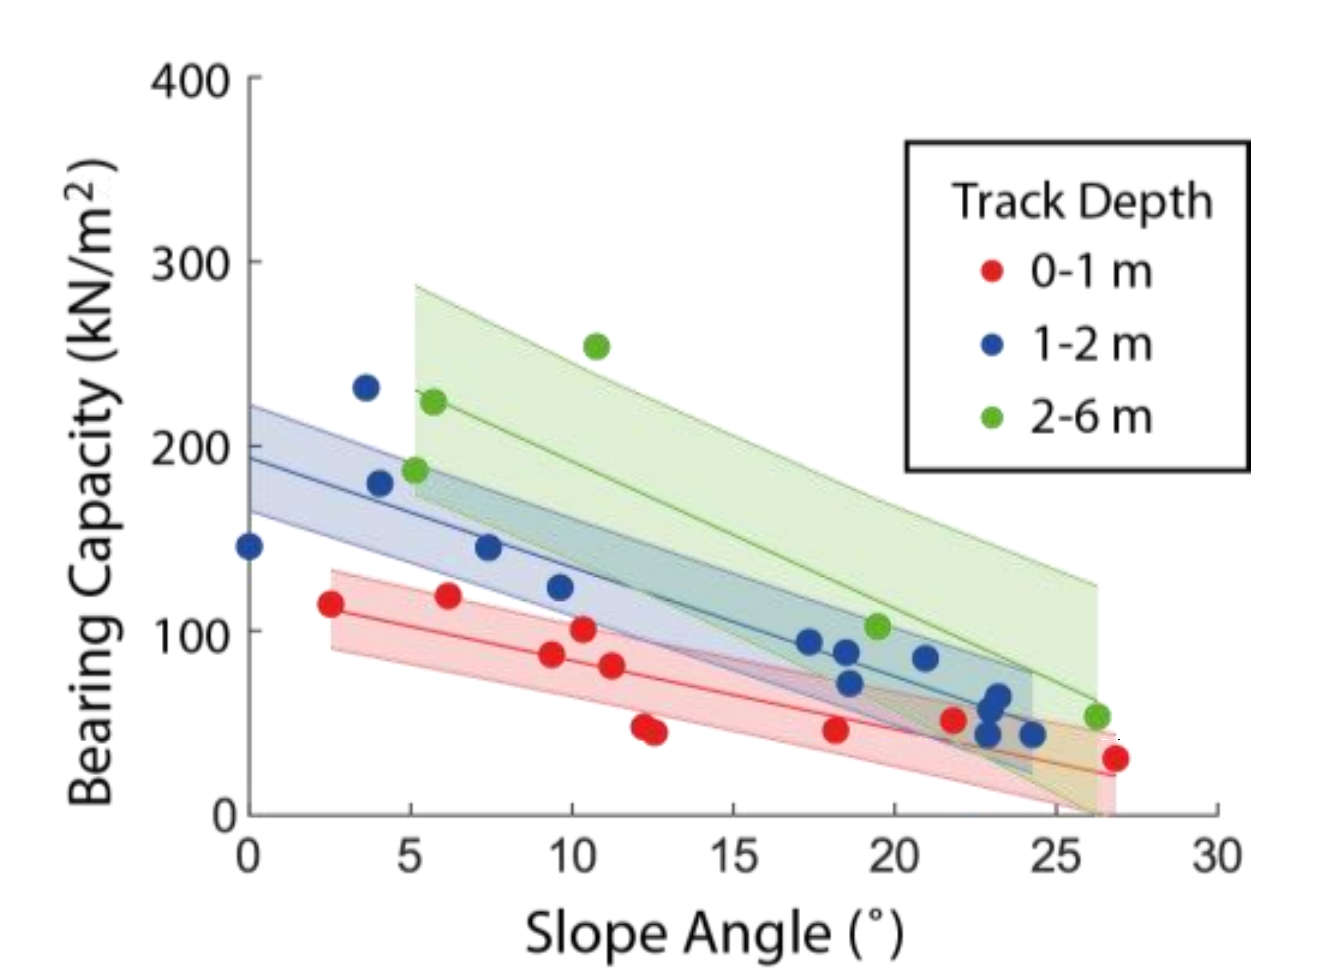 The more slope the regolith is on, the less bearing force (strength) it has. This means that rovers and landers are more likely to sink into regolith on steep slopes than on flat terrain. Credit: Sargeant et al., 2019, Figure 4.